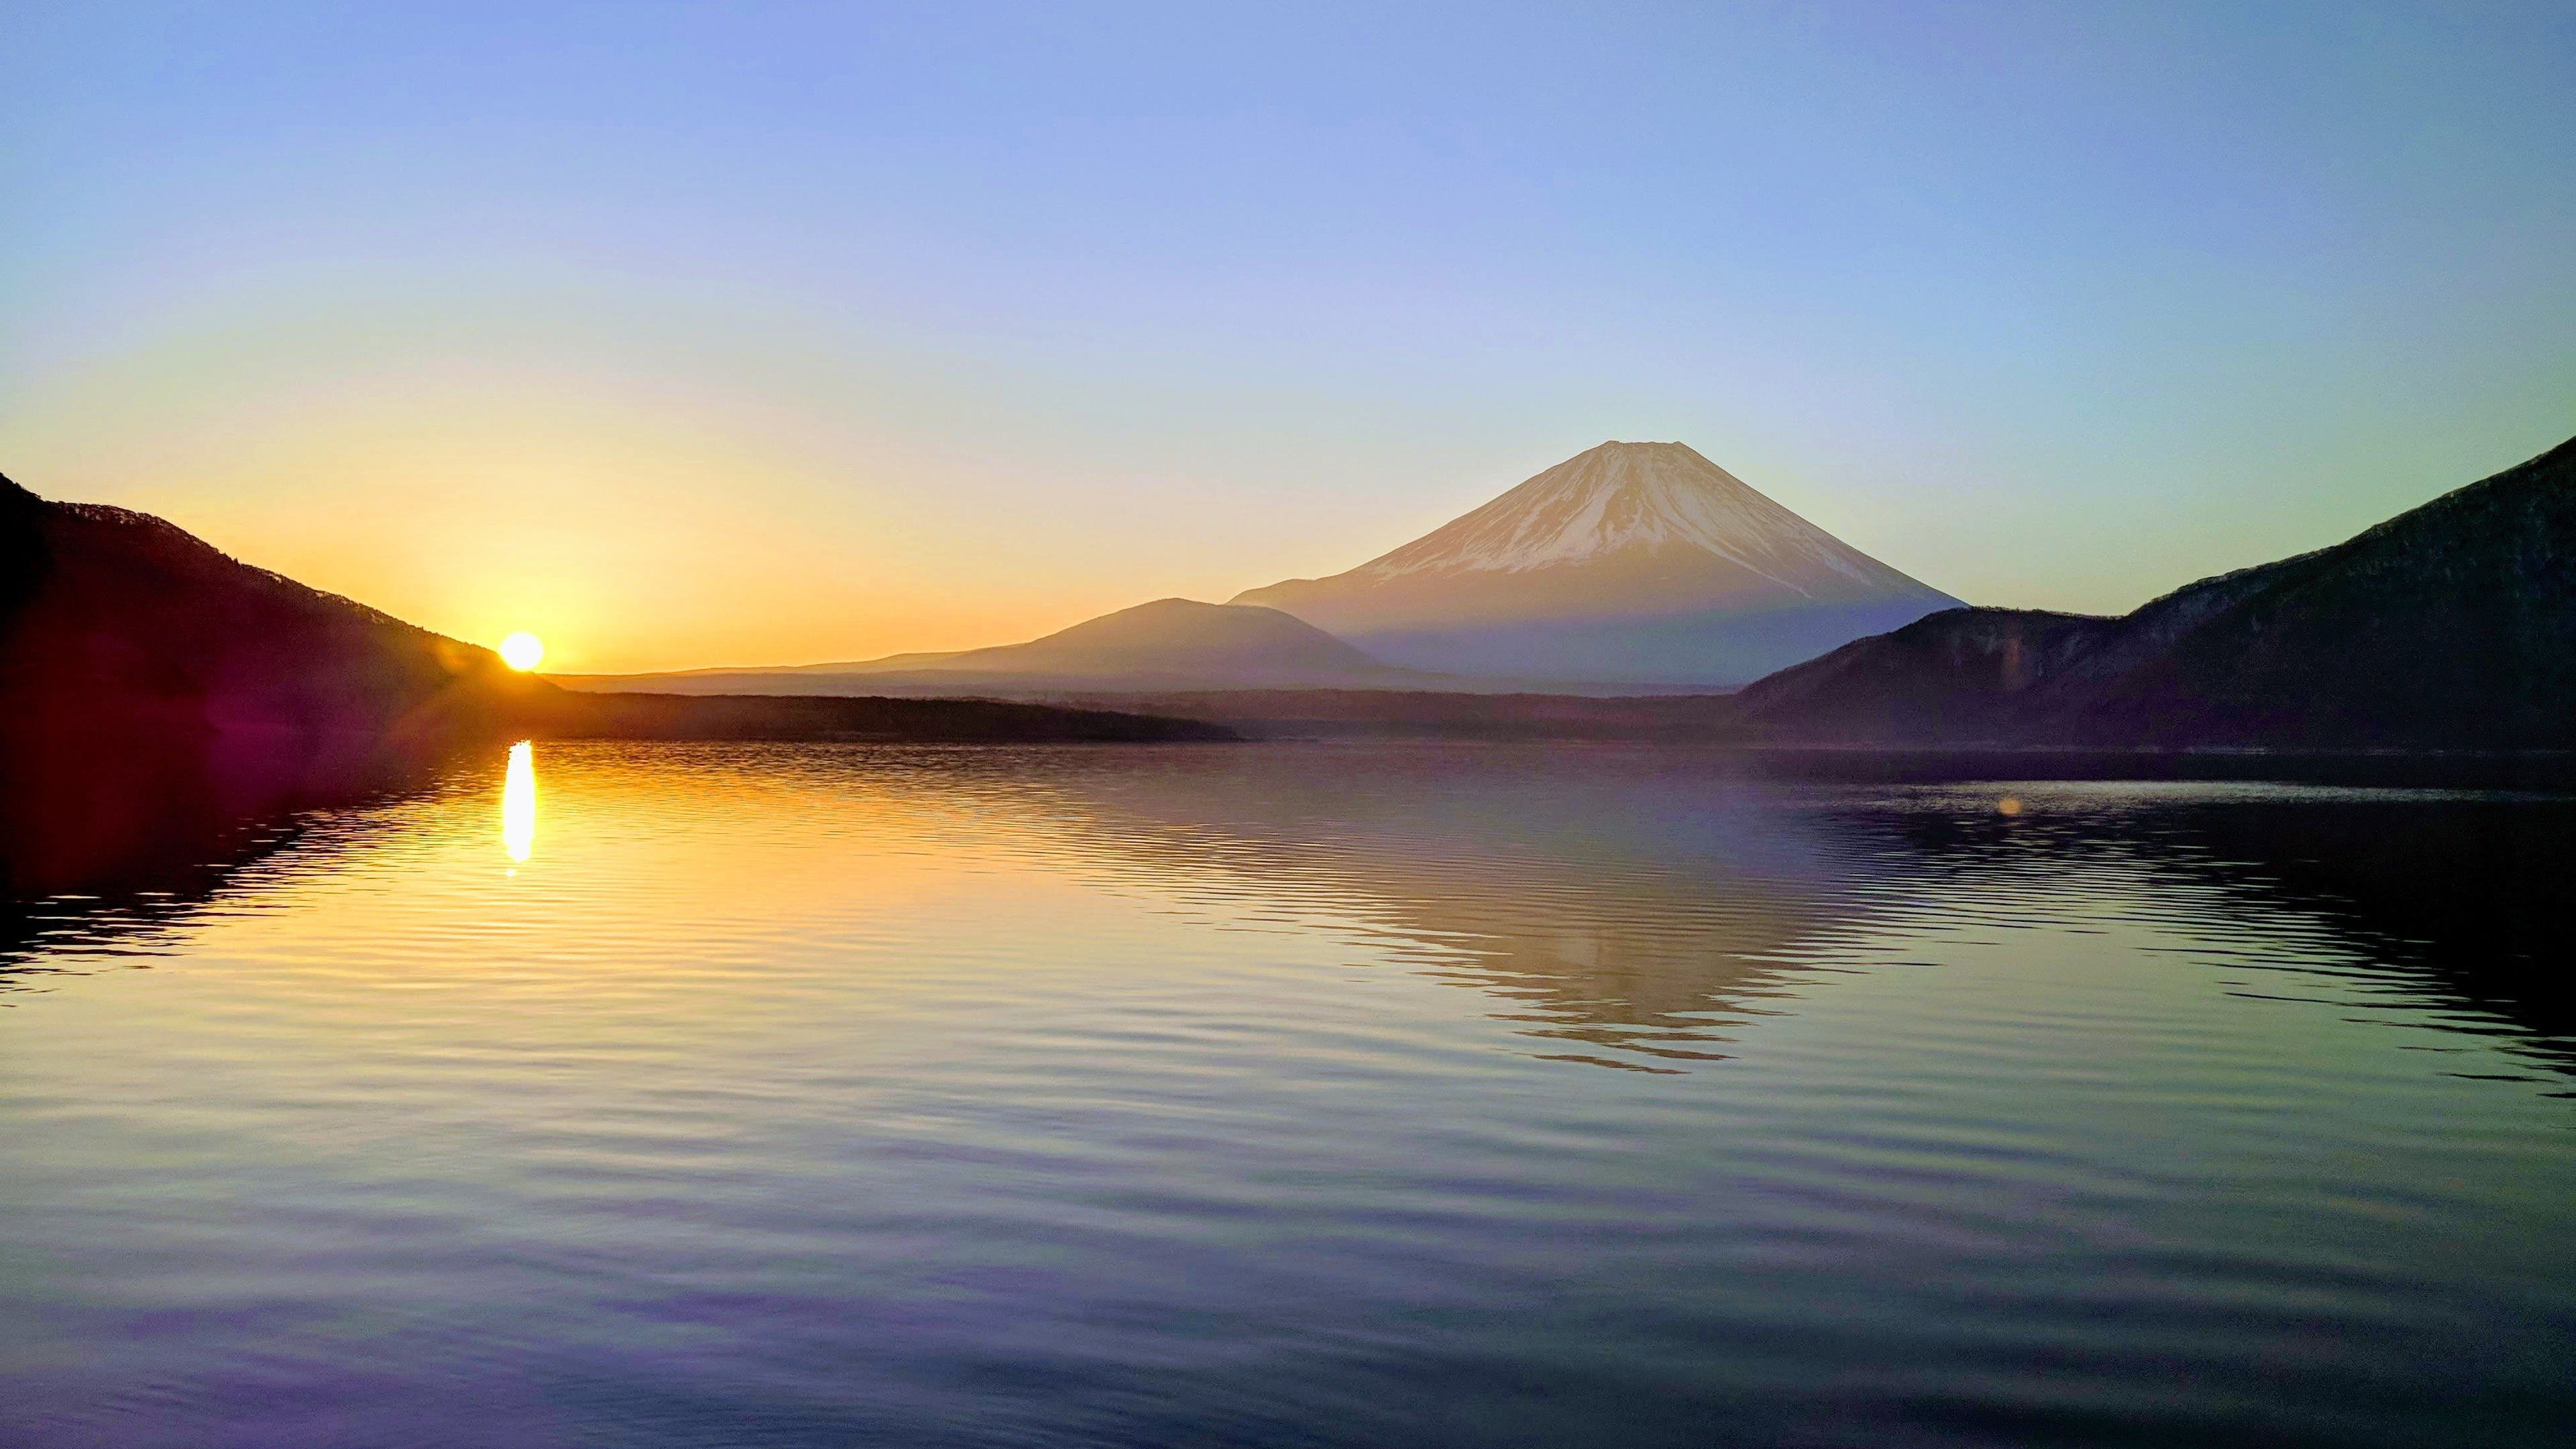 Wallpaper 4k Mount Fuji 4k 4k Wallpapers Hd Wallpapers